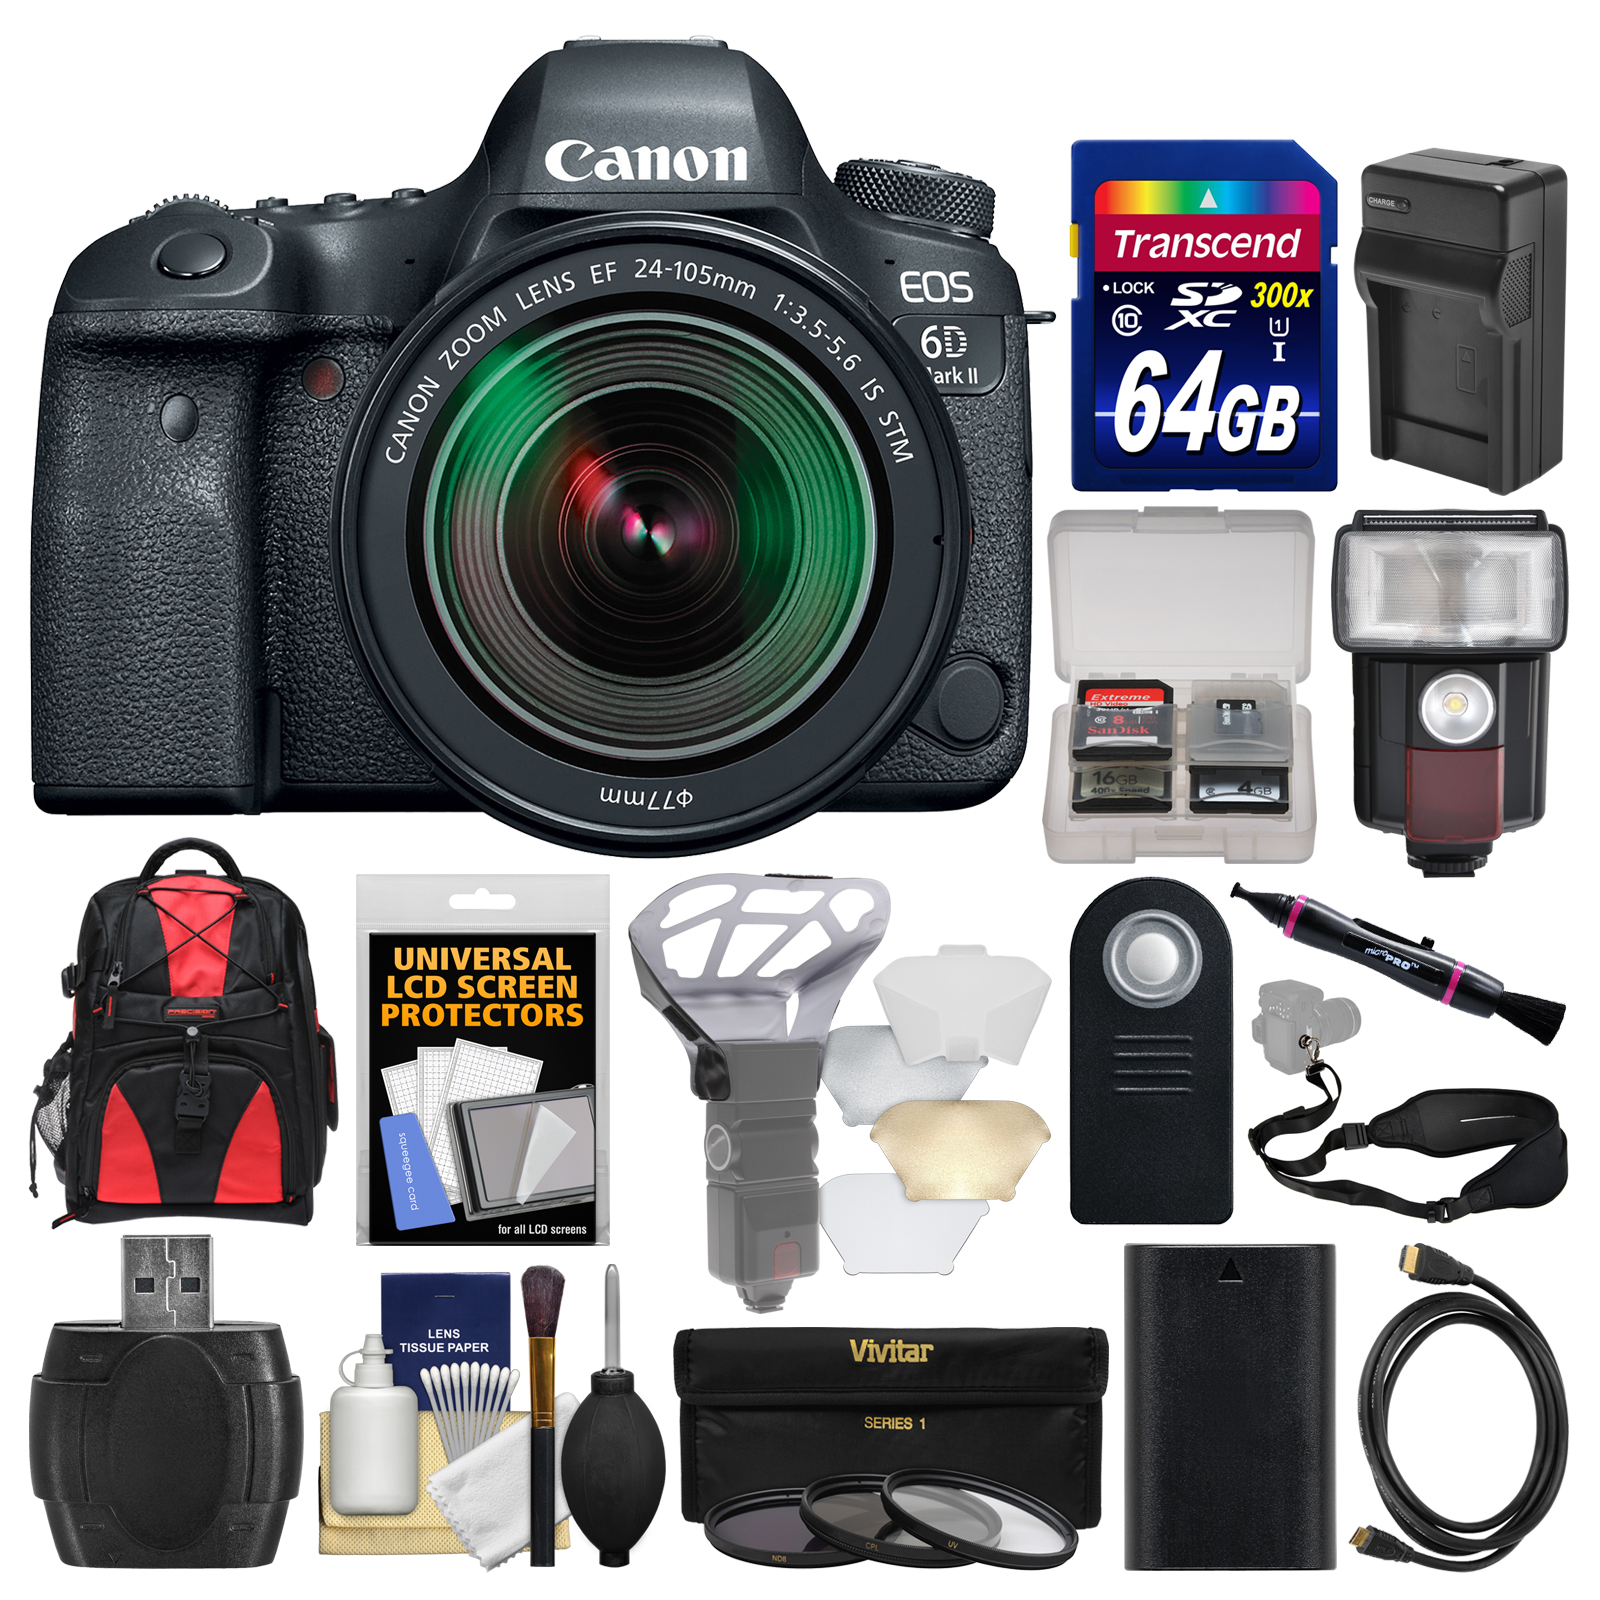 Canon EOS 6D Mark II Wi-Fi Digital SLR Camera & EF 24-105mm IS STM Lens with 64GB Card + Backpack + Flash + Battery &... by Canon